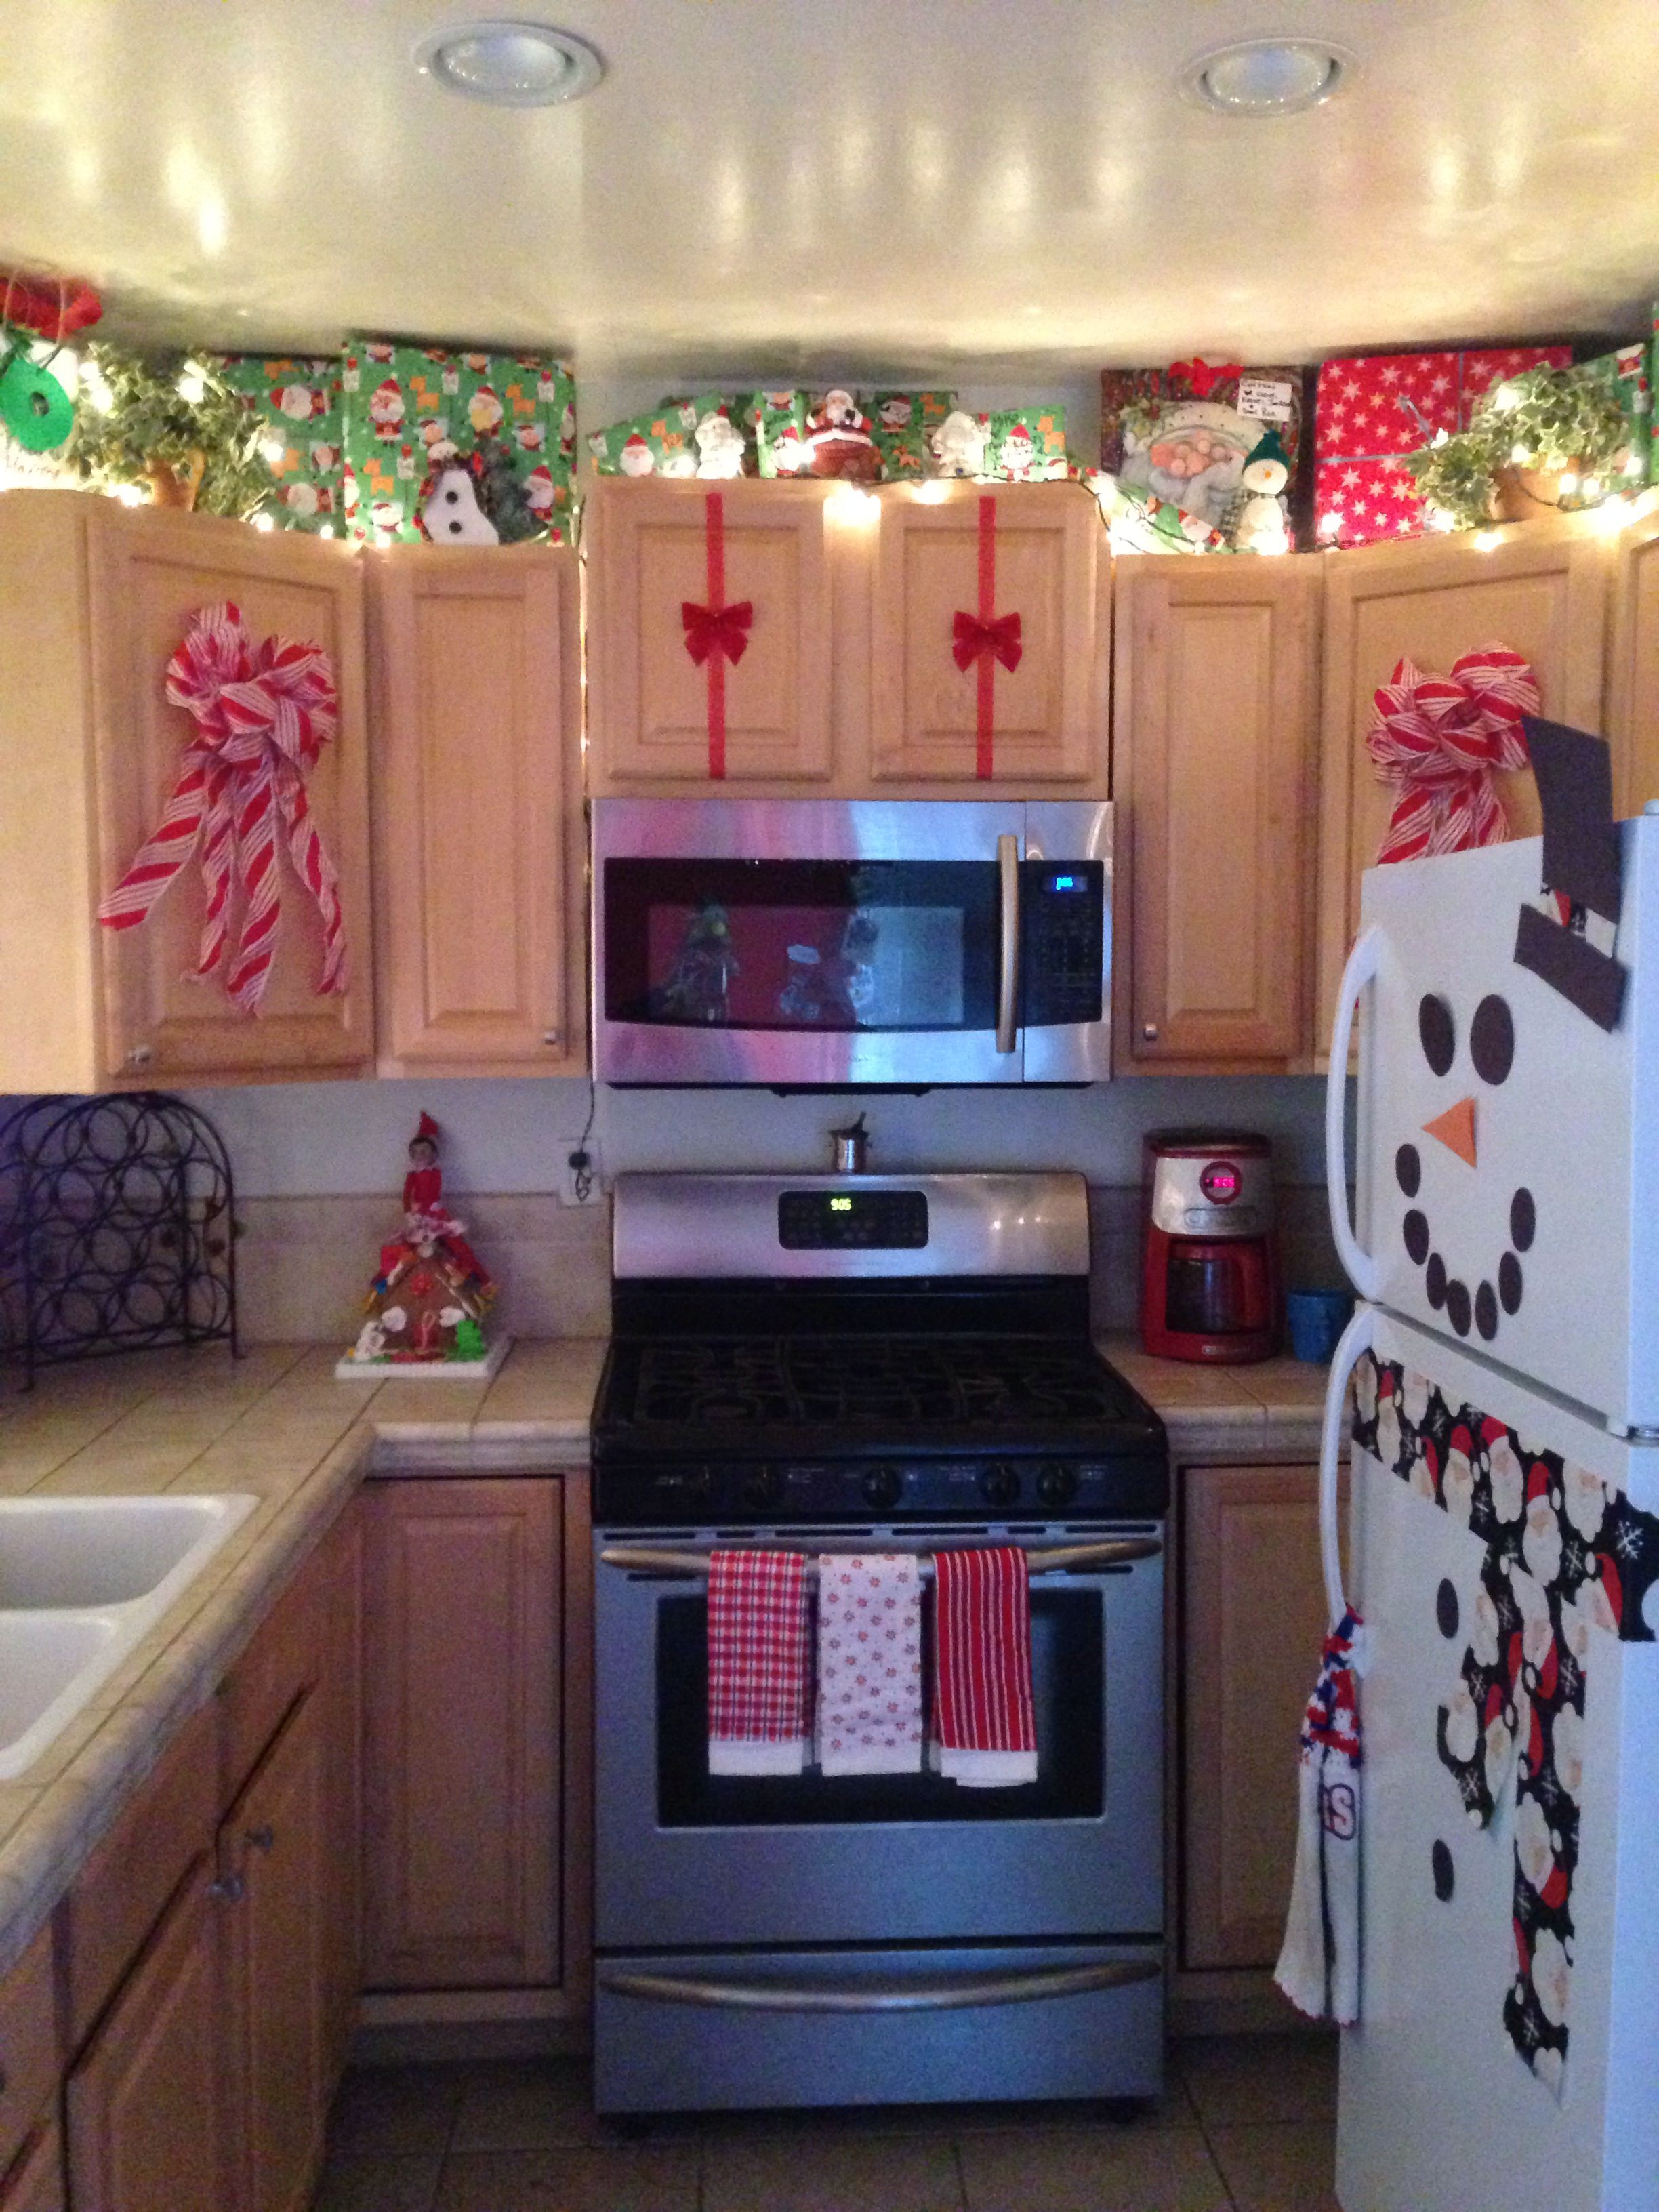 Christmas Kitchen Christmas Kitchen Decor Christmas Apartment Easy Christmas Decorations